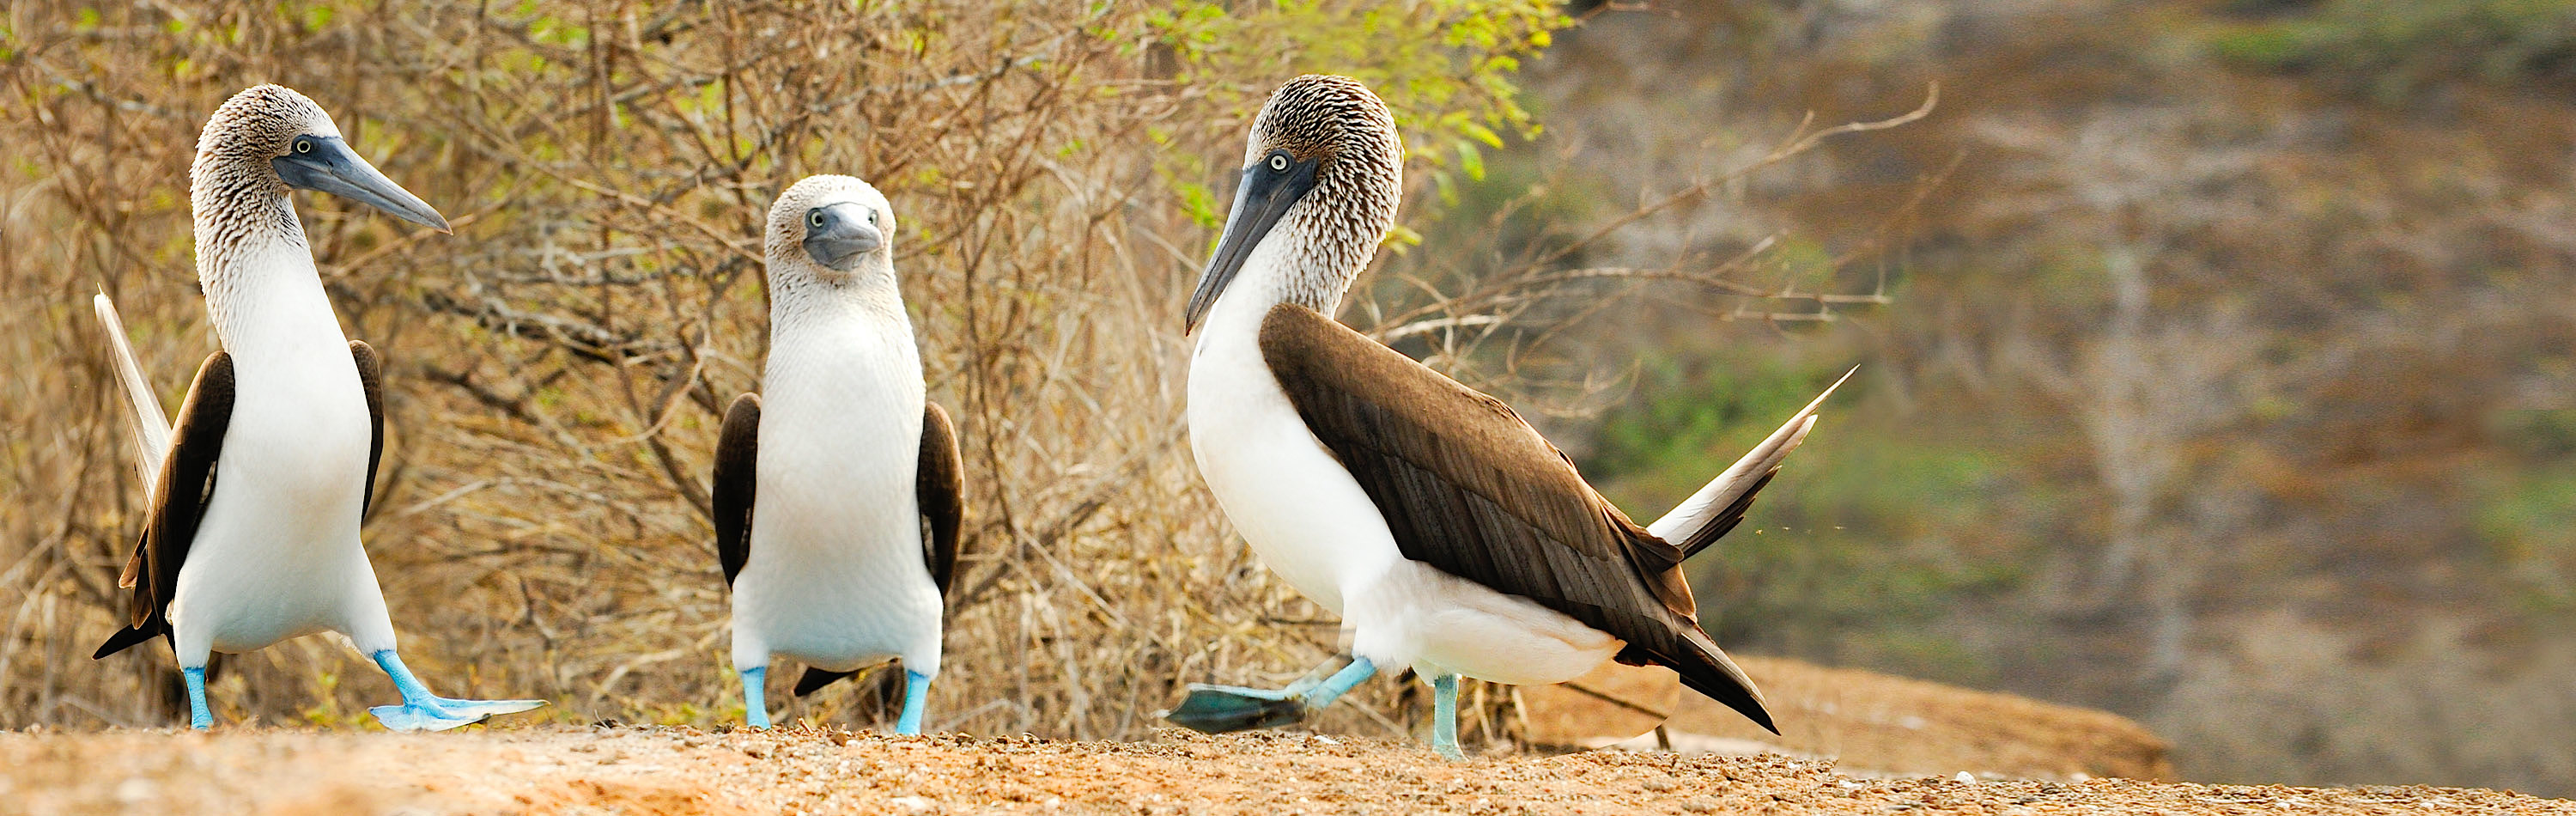 Best Galapagos Islands Vacations Tours 2020 2021